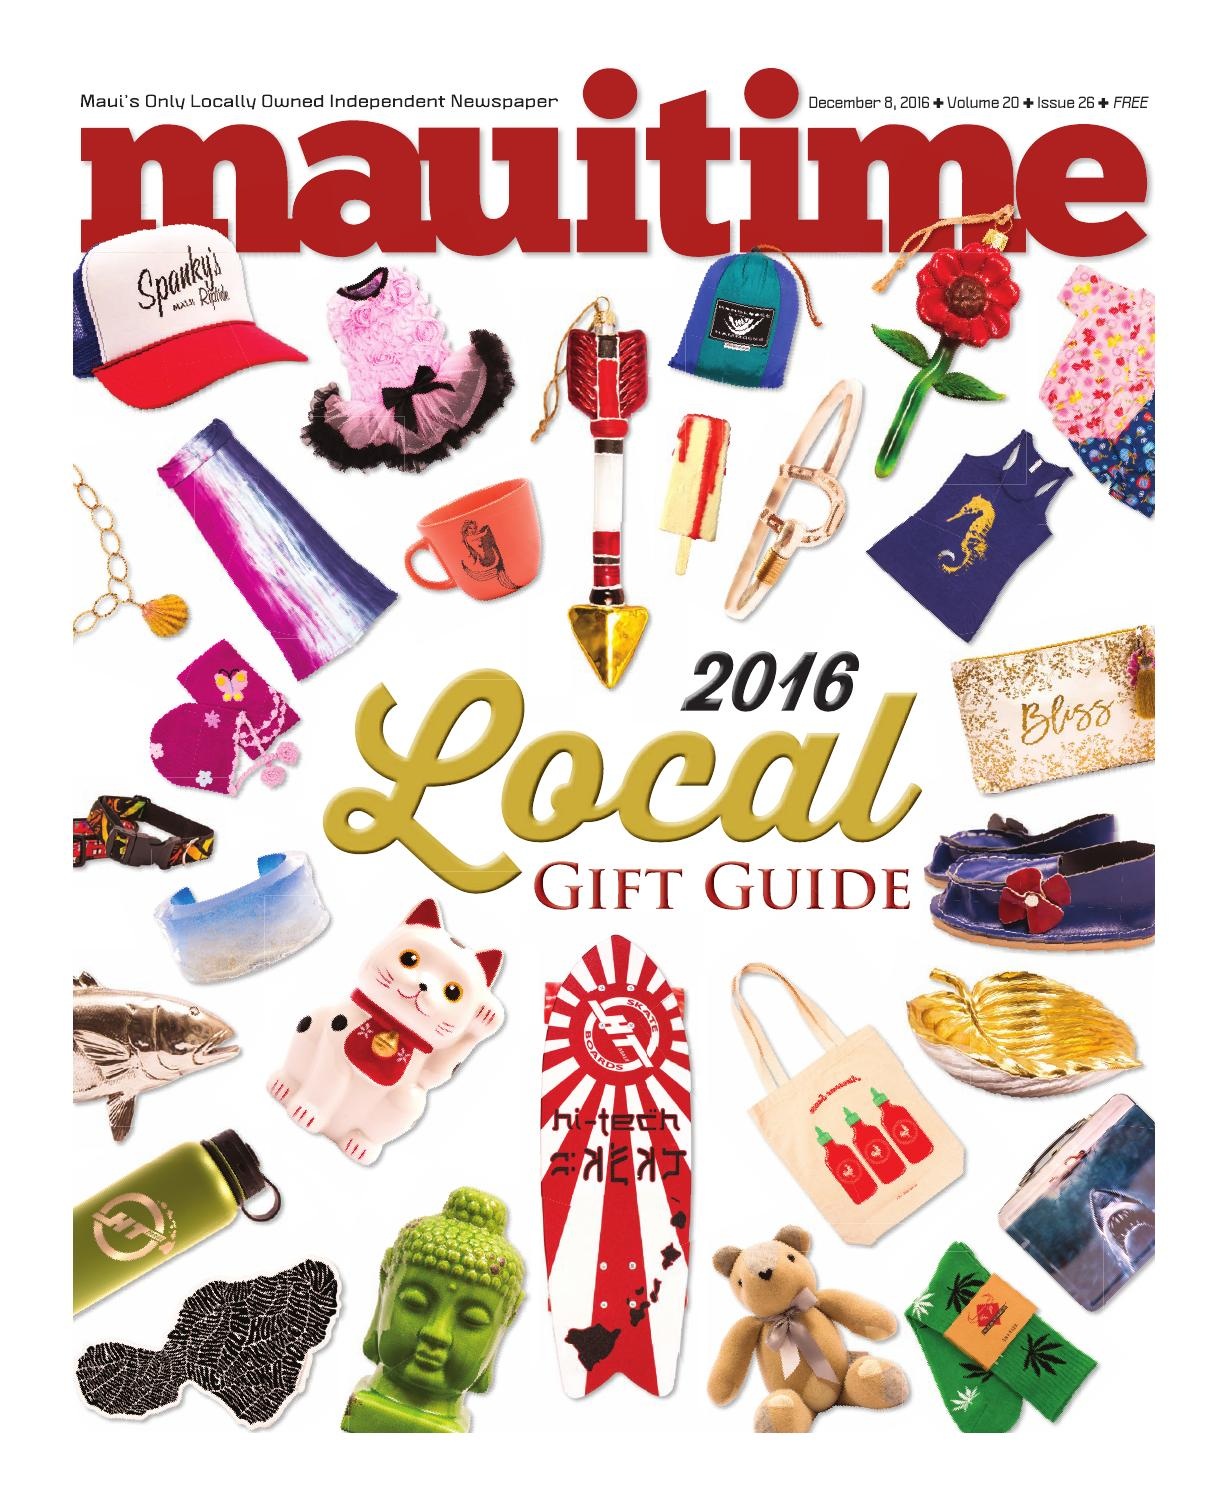 20.26 Local Holiday Gift Guide 2016, December 8, 2016, Volume 20, Issue 26,  MauiTime